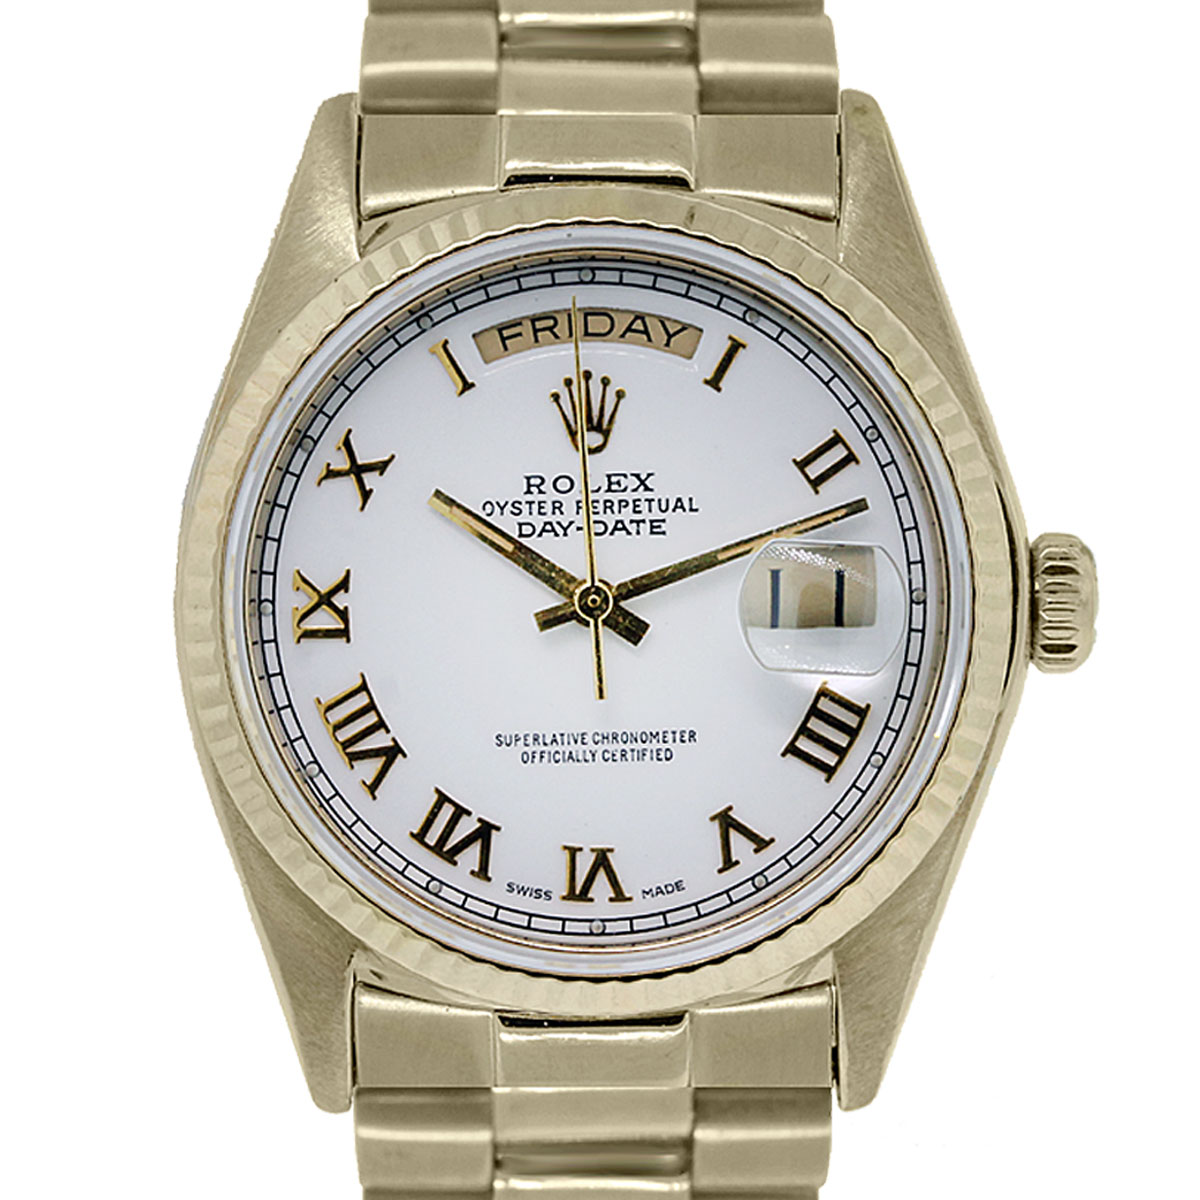 Rolex Day Date 18038 18k Gold White Dial Presidential Watch